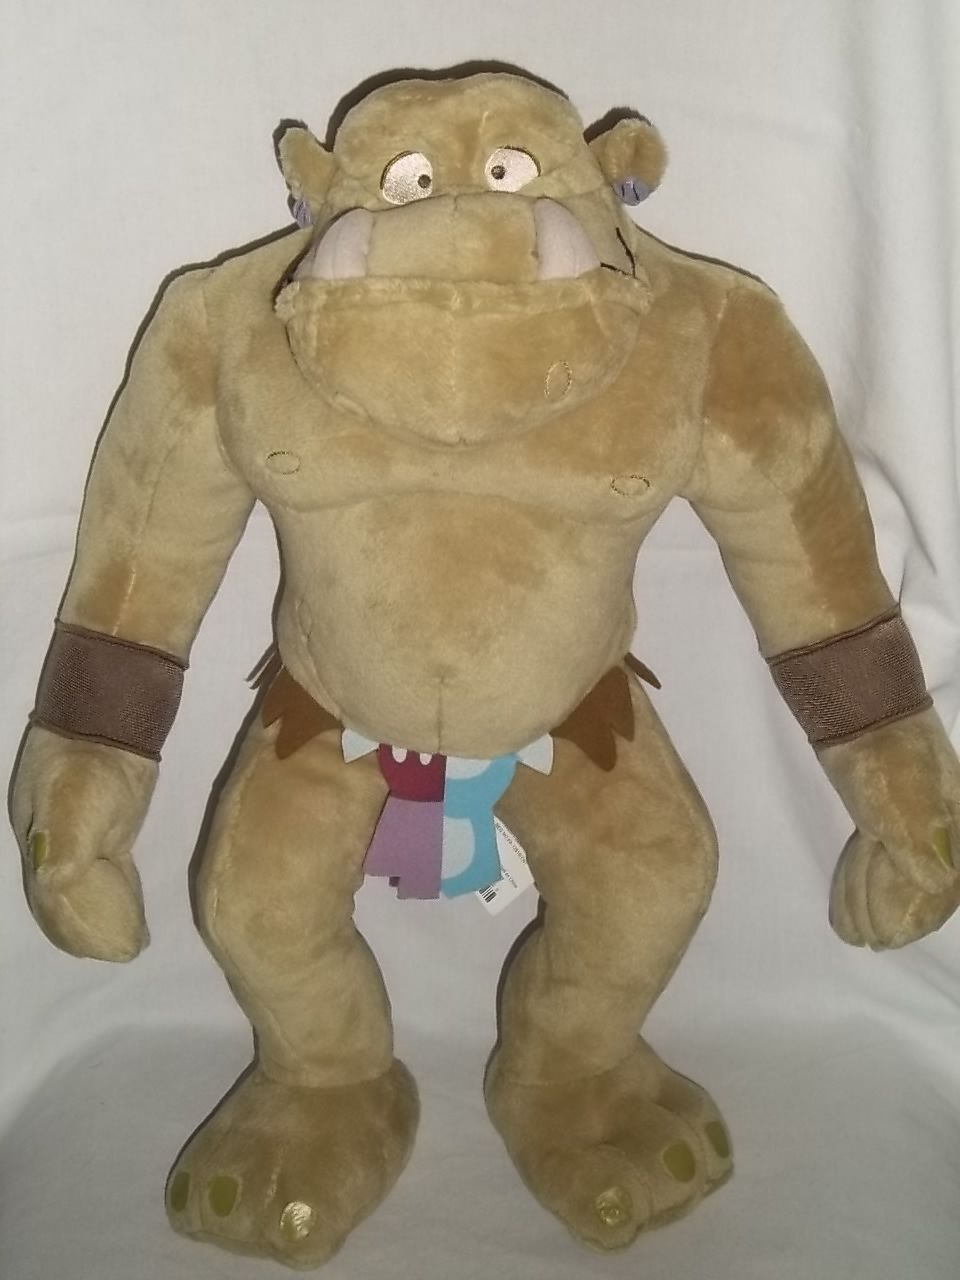 Large Stuffed Animals, Disney Disney, Troll, Product Page, Enchanted,  Plushies, Stuffed Toys